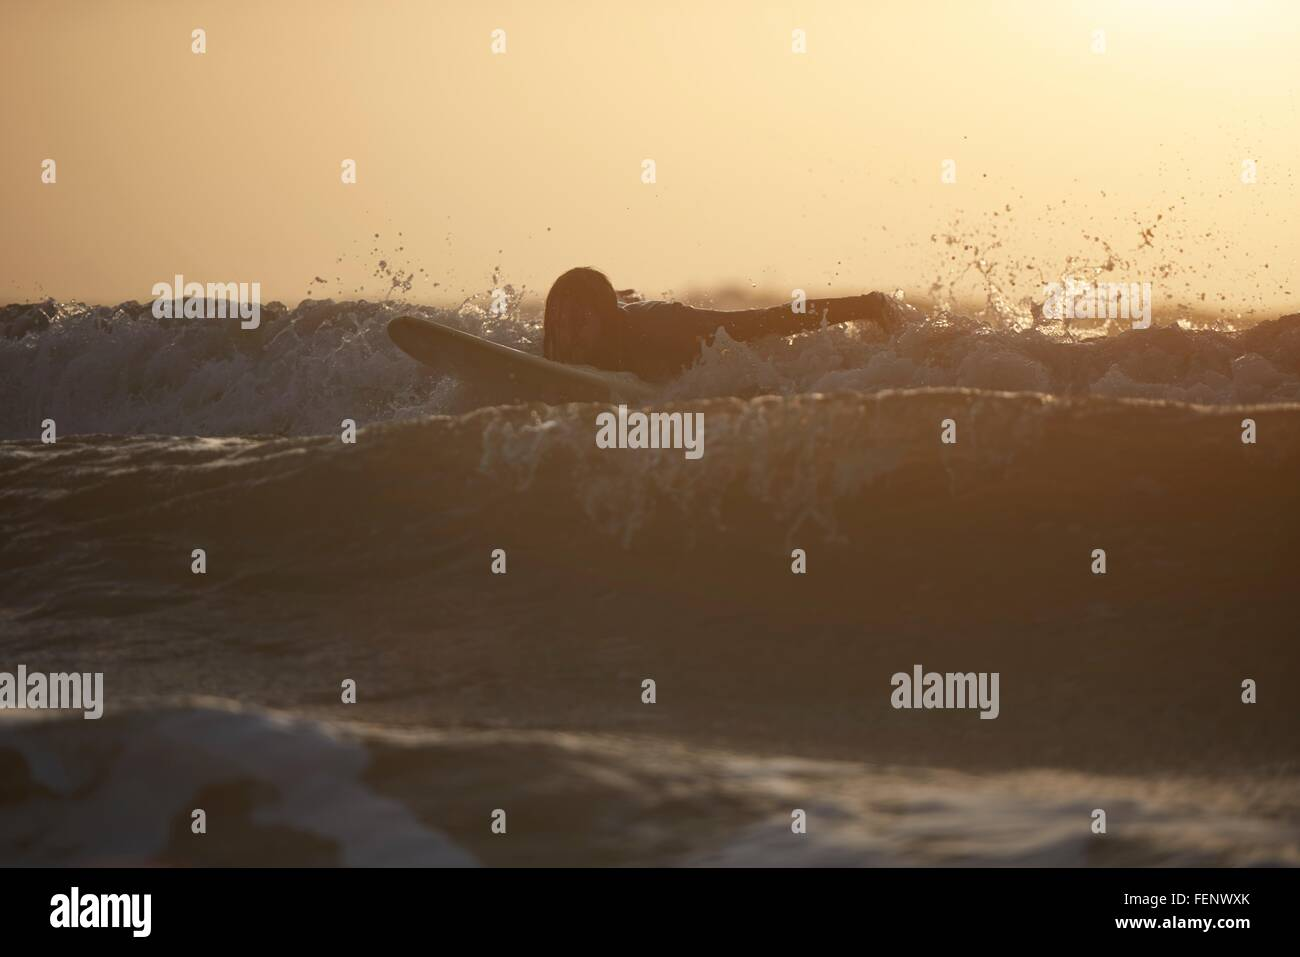 Silhouette de jeune homme surf surfer en mer, Devon, England, UK Photo Stock